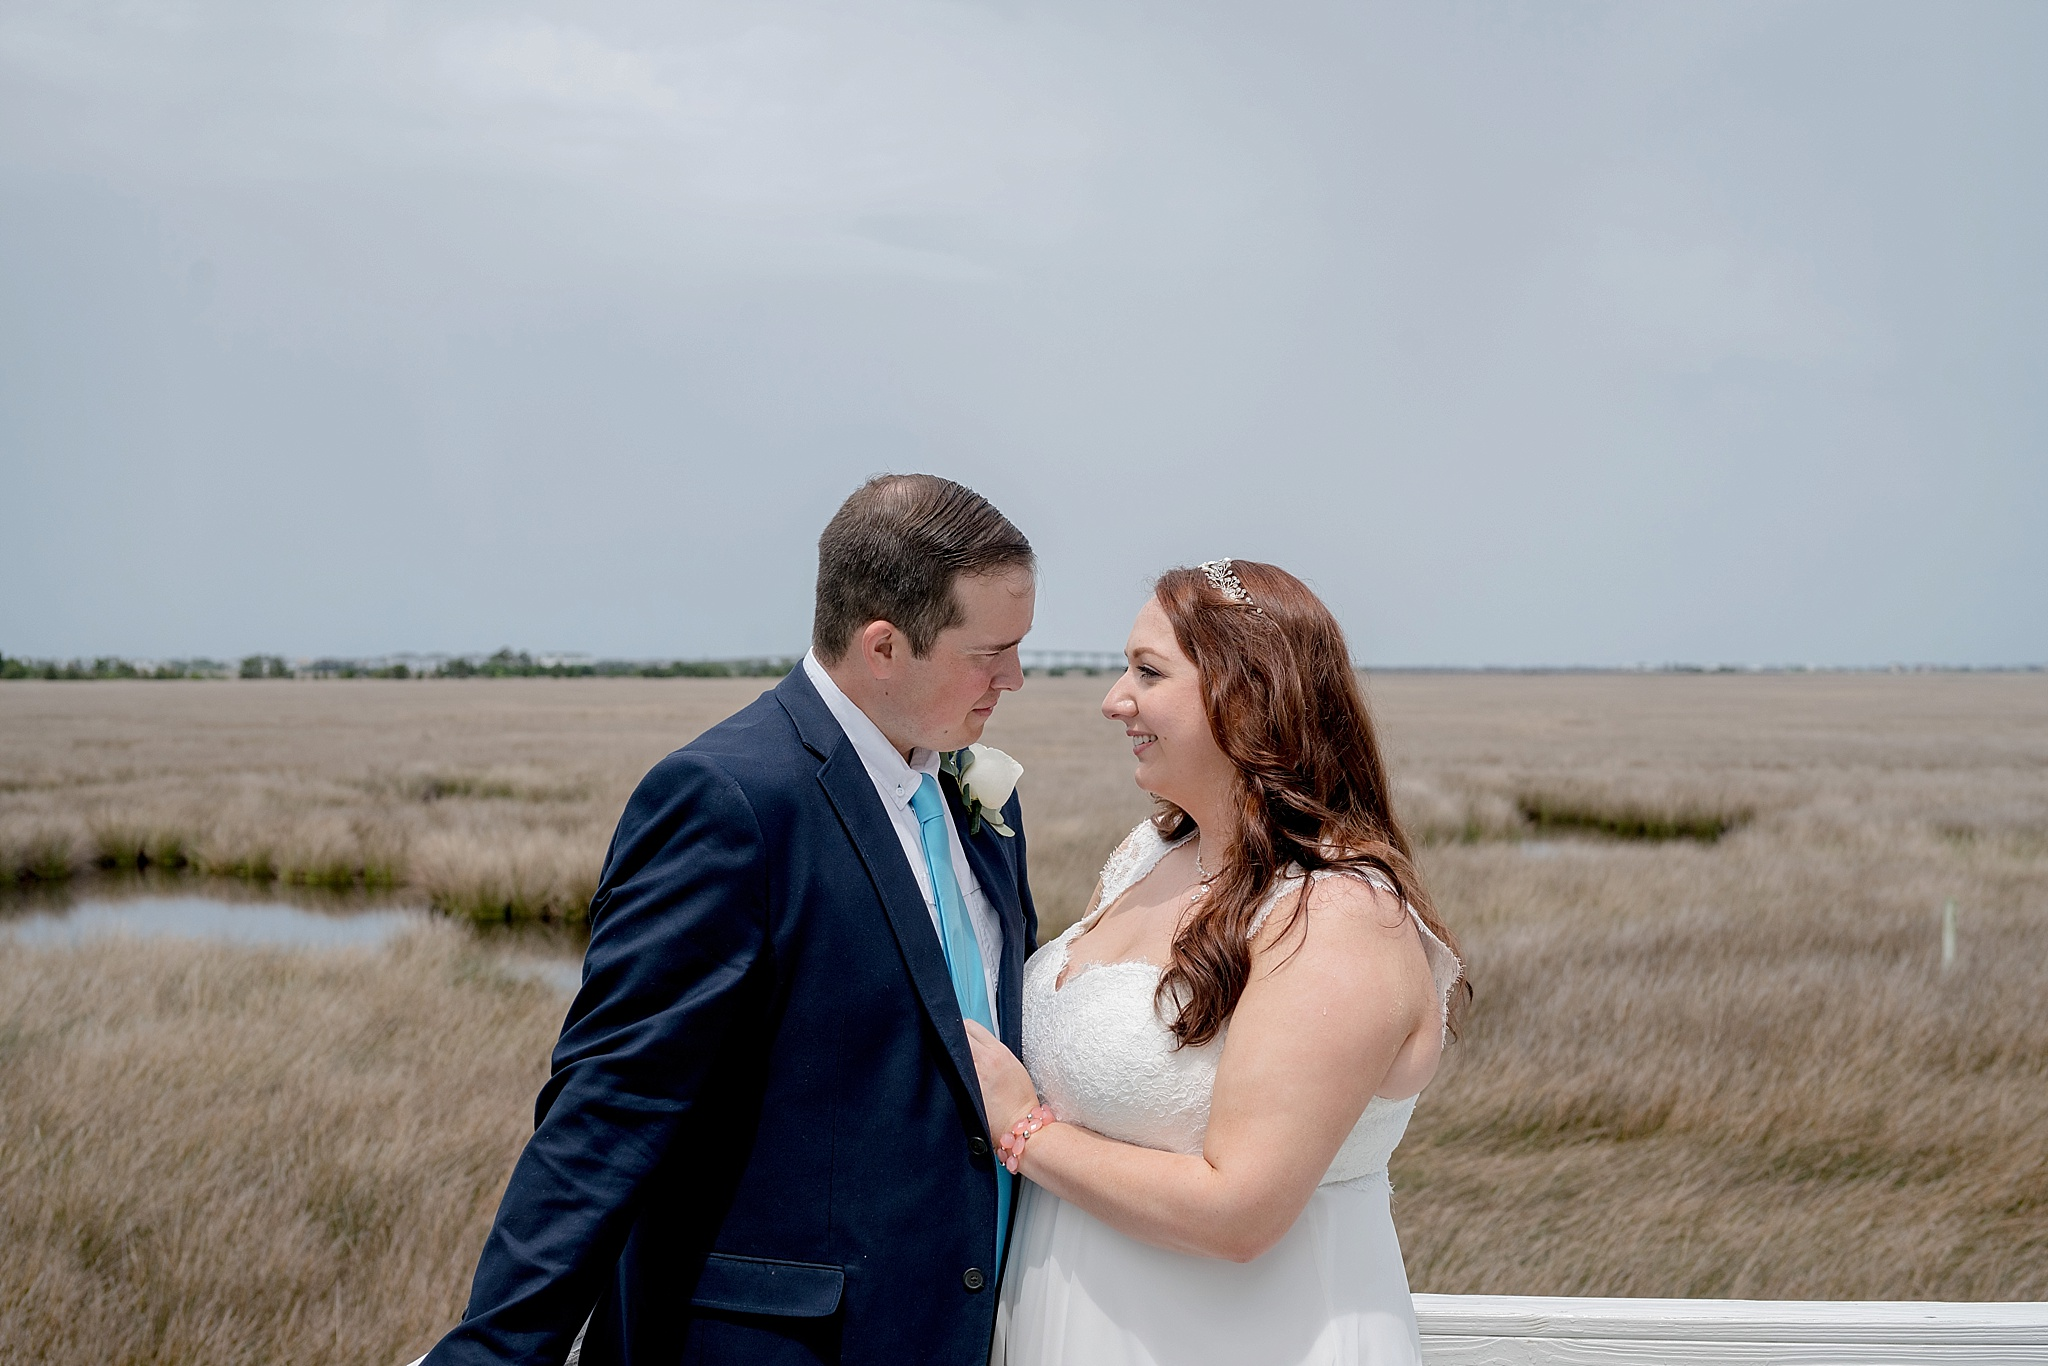 Manteo-NC-Wedding-Photographer-137.jpg